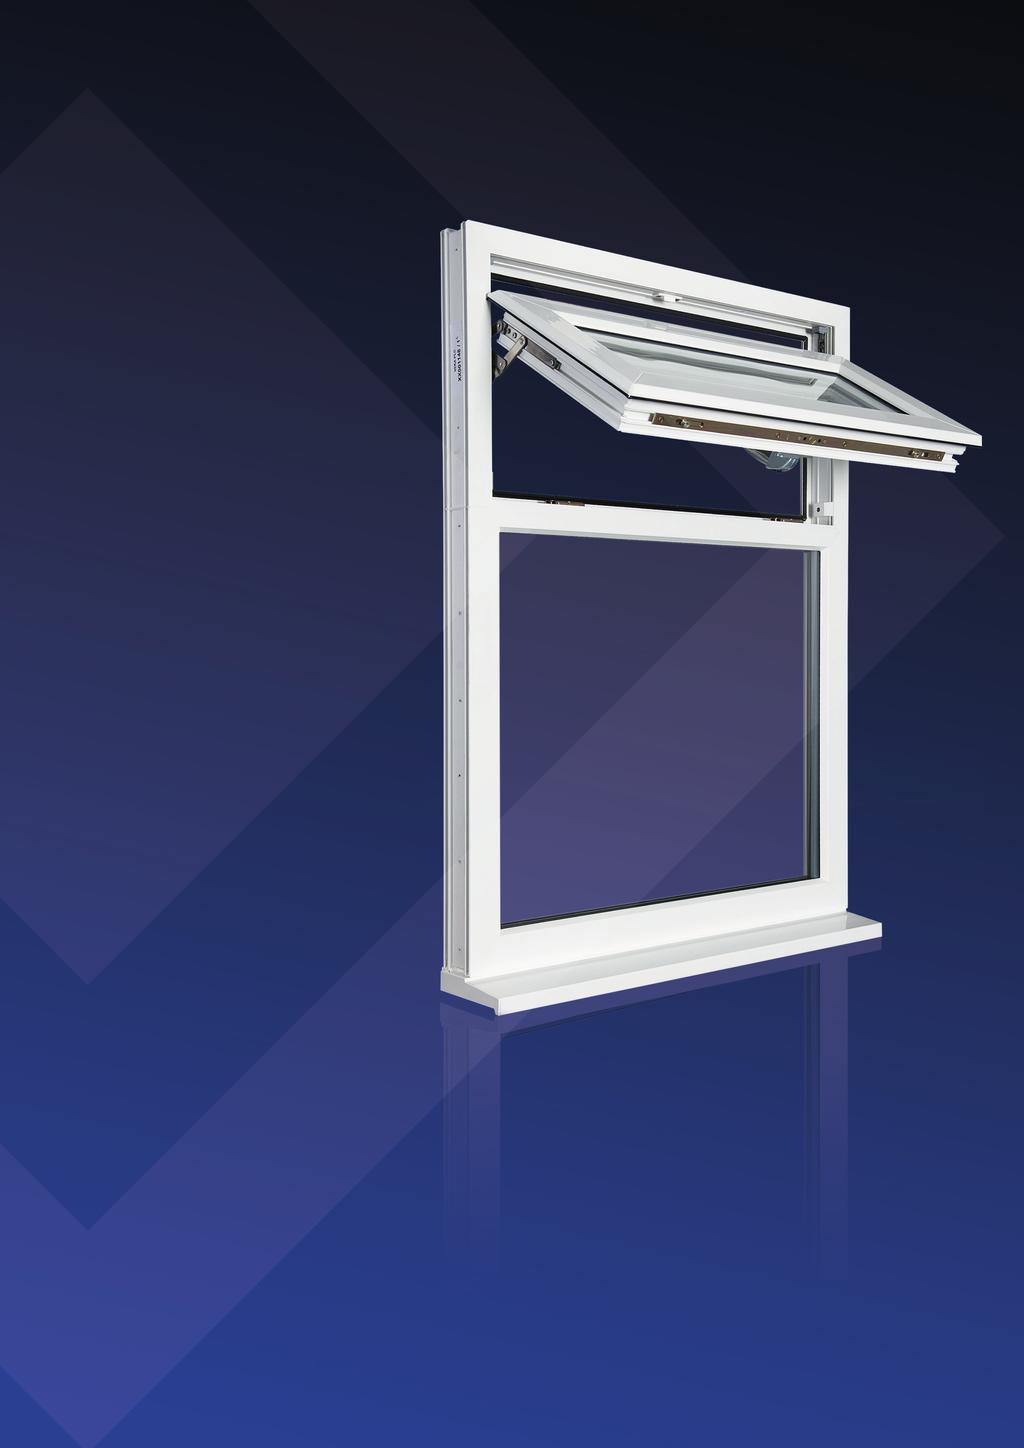 Matrix 70 Window System Enhanced energy